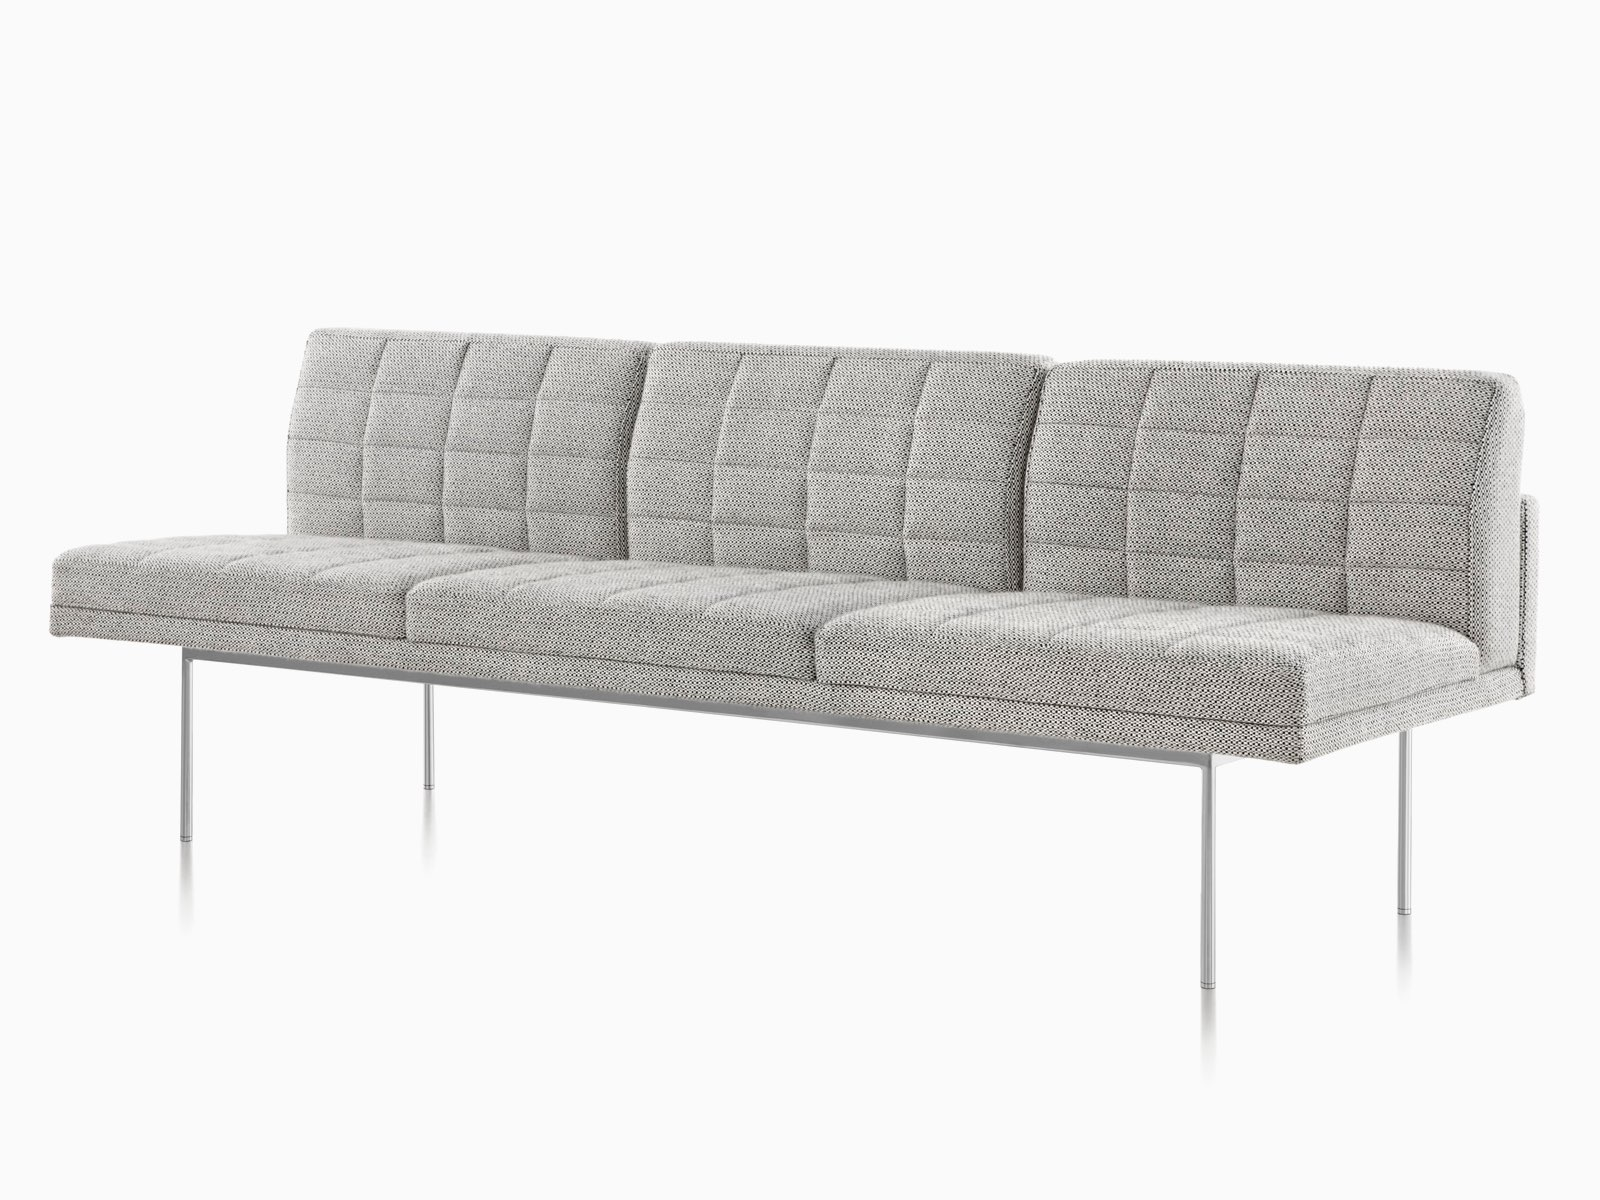 Gray Tuxedo Sofa, viewed from front.